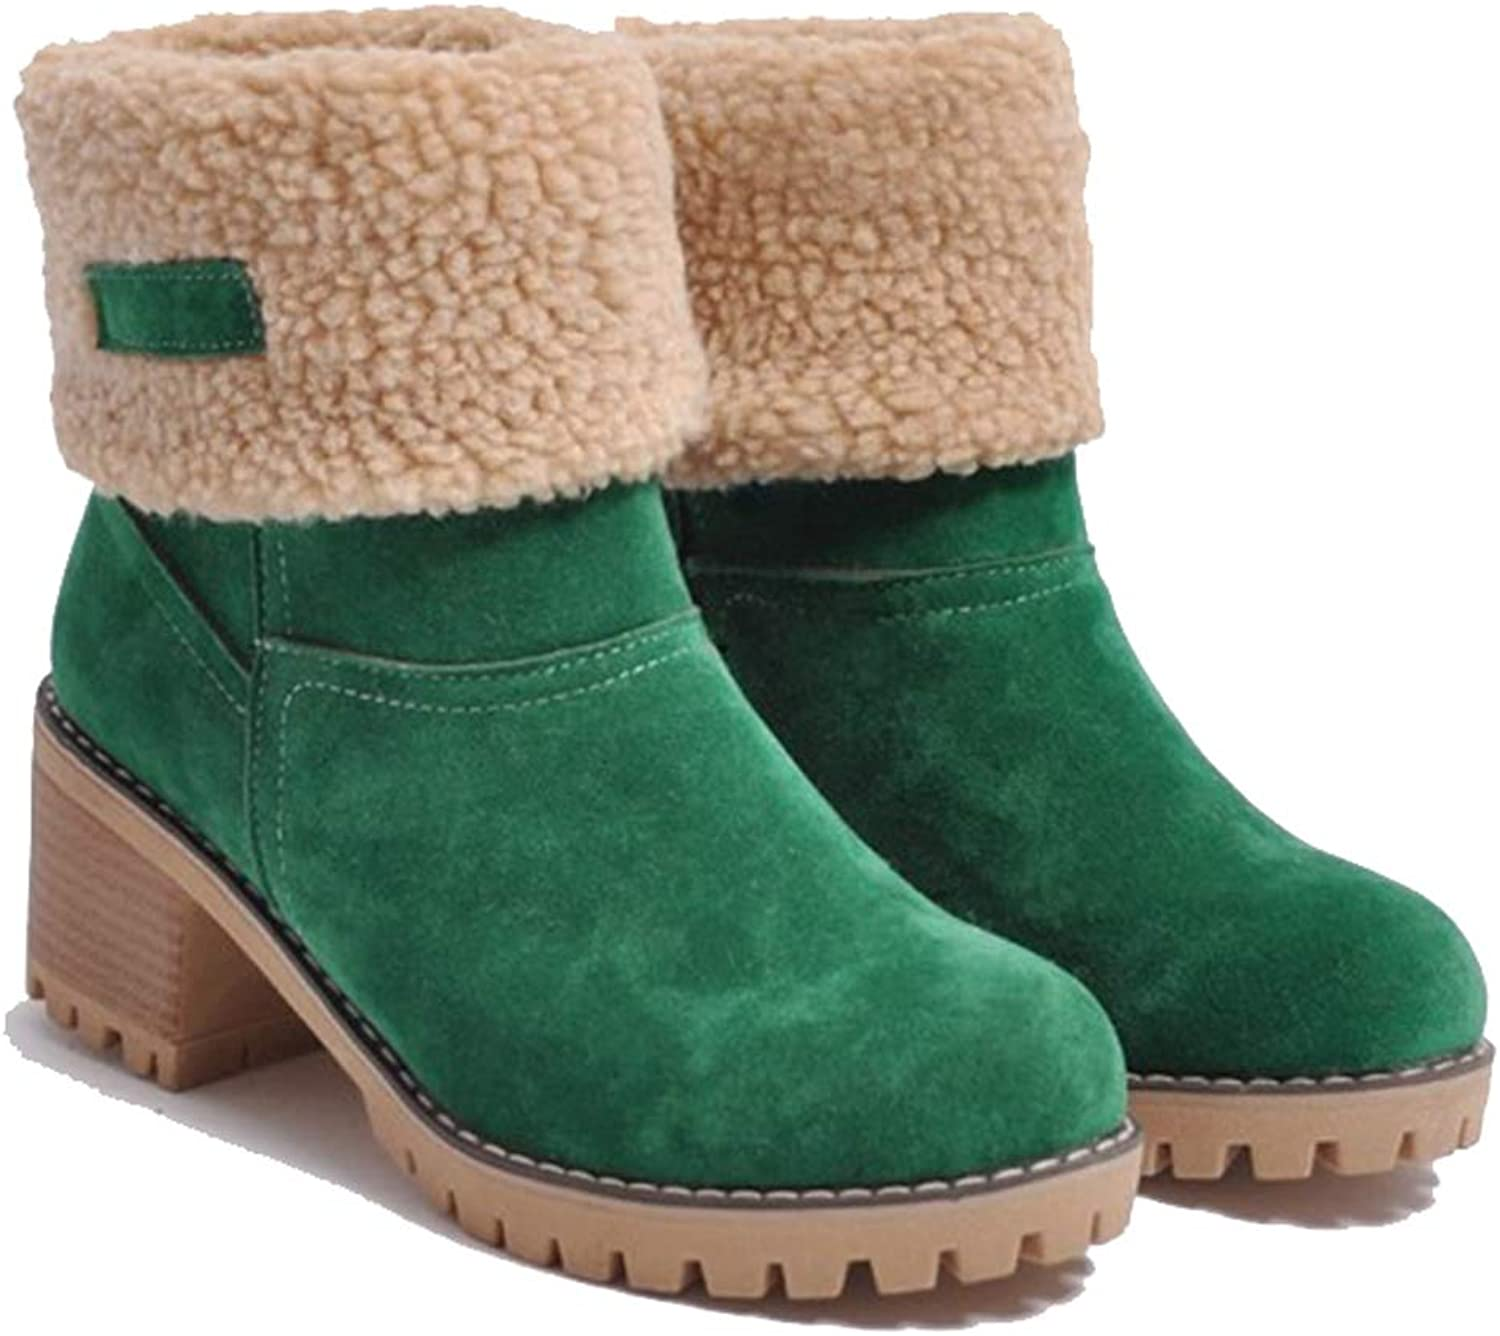 YUhe2018Cw Yu He Women Cute Warm Short Boots Suede Chunky Mid Heel Round Toe Winter Snow Ankle Booties Green 38